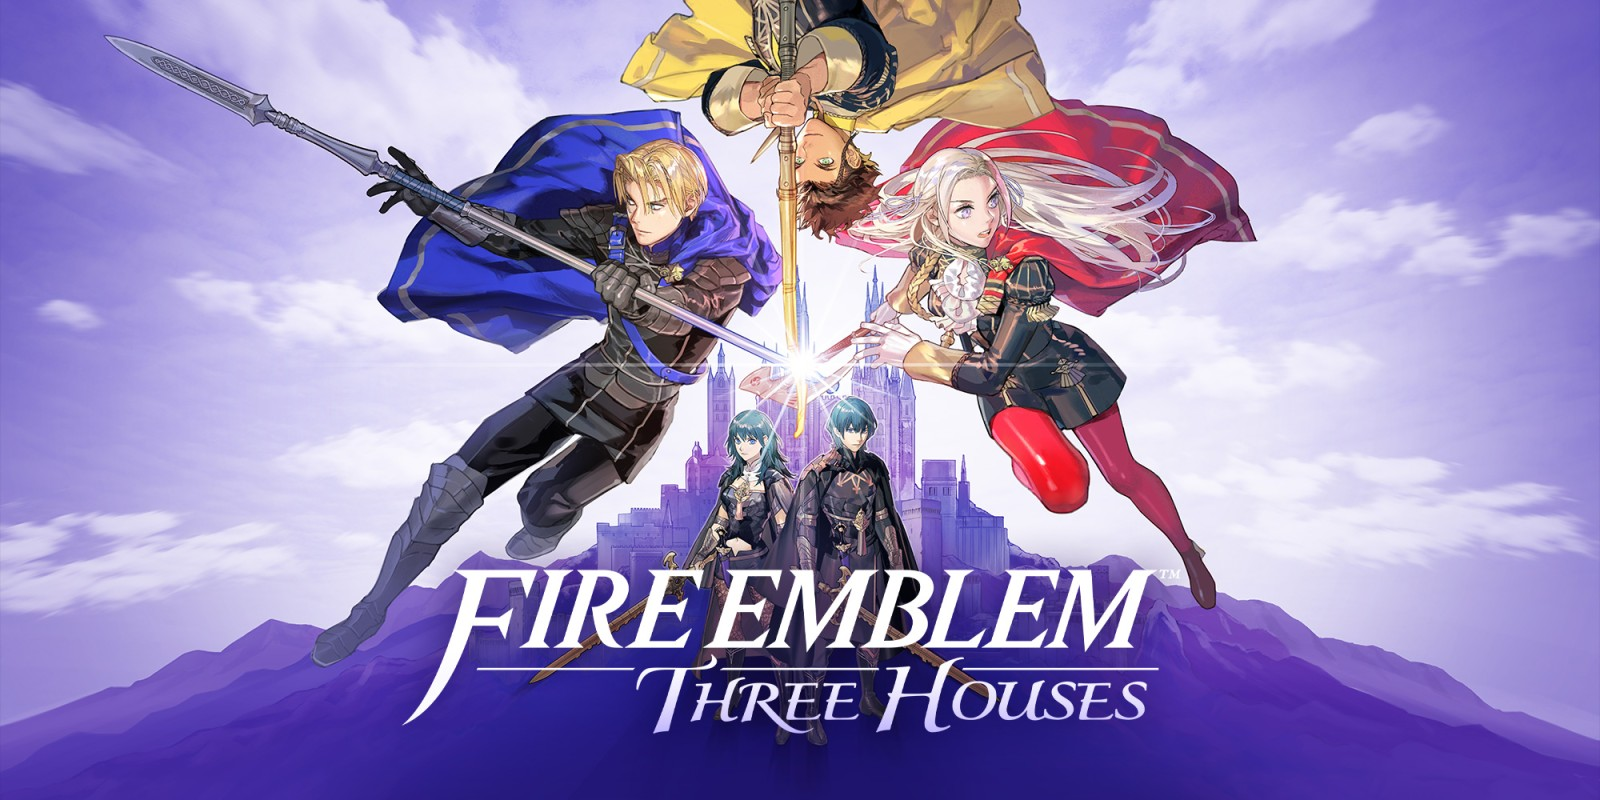 Fire Emblem: Three Houses | Nintendo Switch | Games | Nintendo